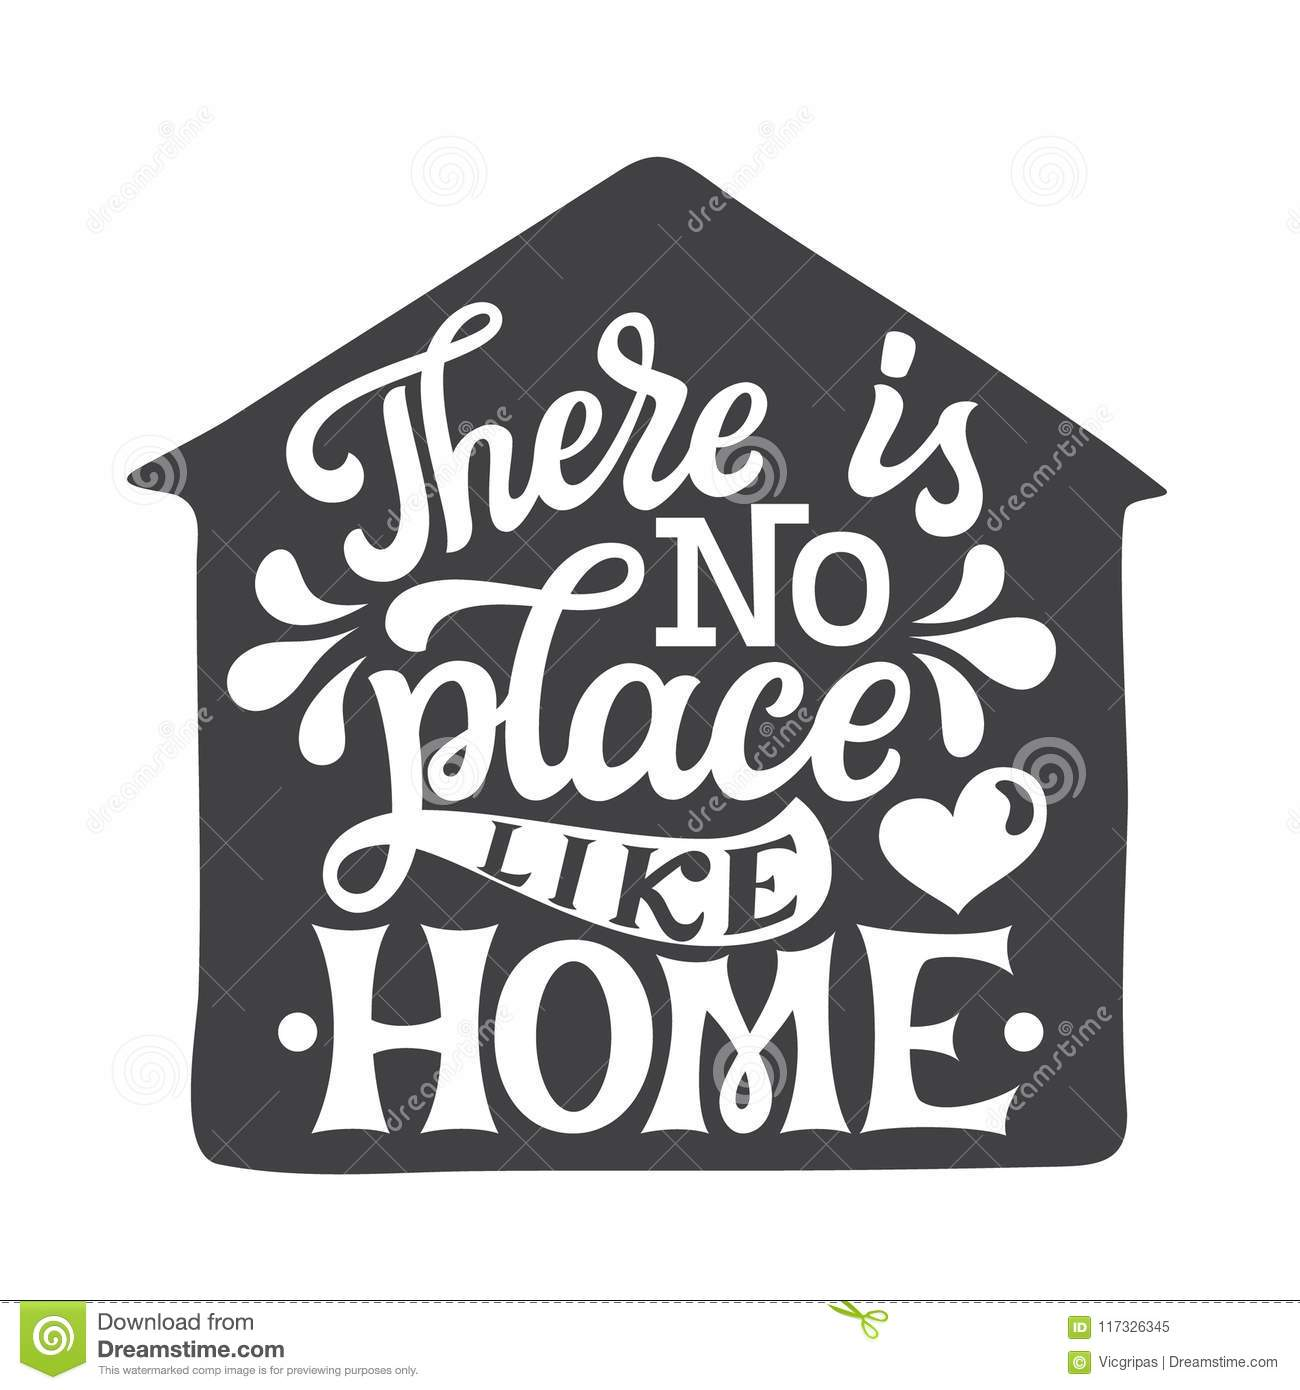 There Is No Place Like Home Inspirational Hand Drawn Lettering Typography Quote For Posters Decor Housewarming Pillows Vector Calligraphy